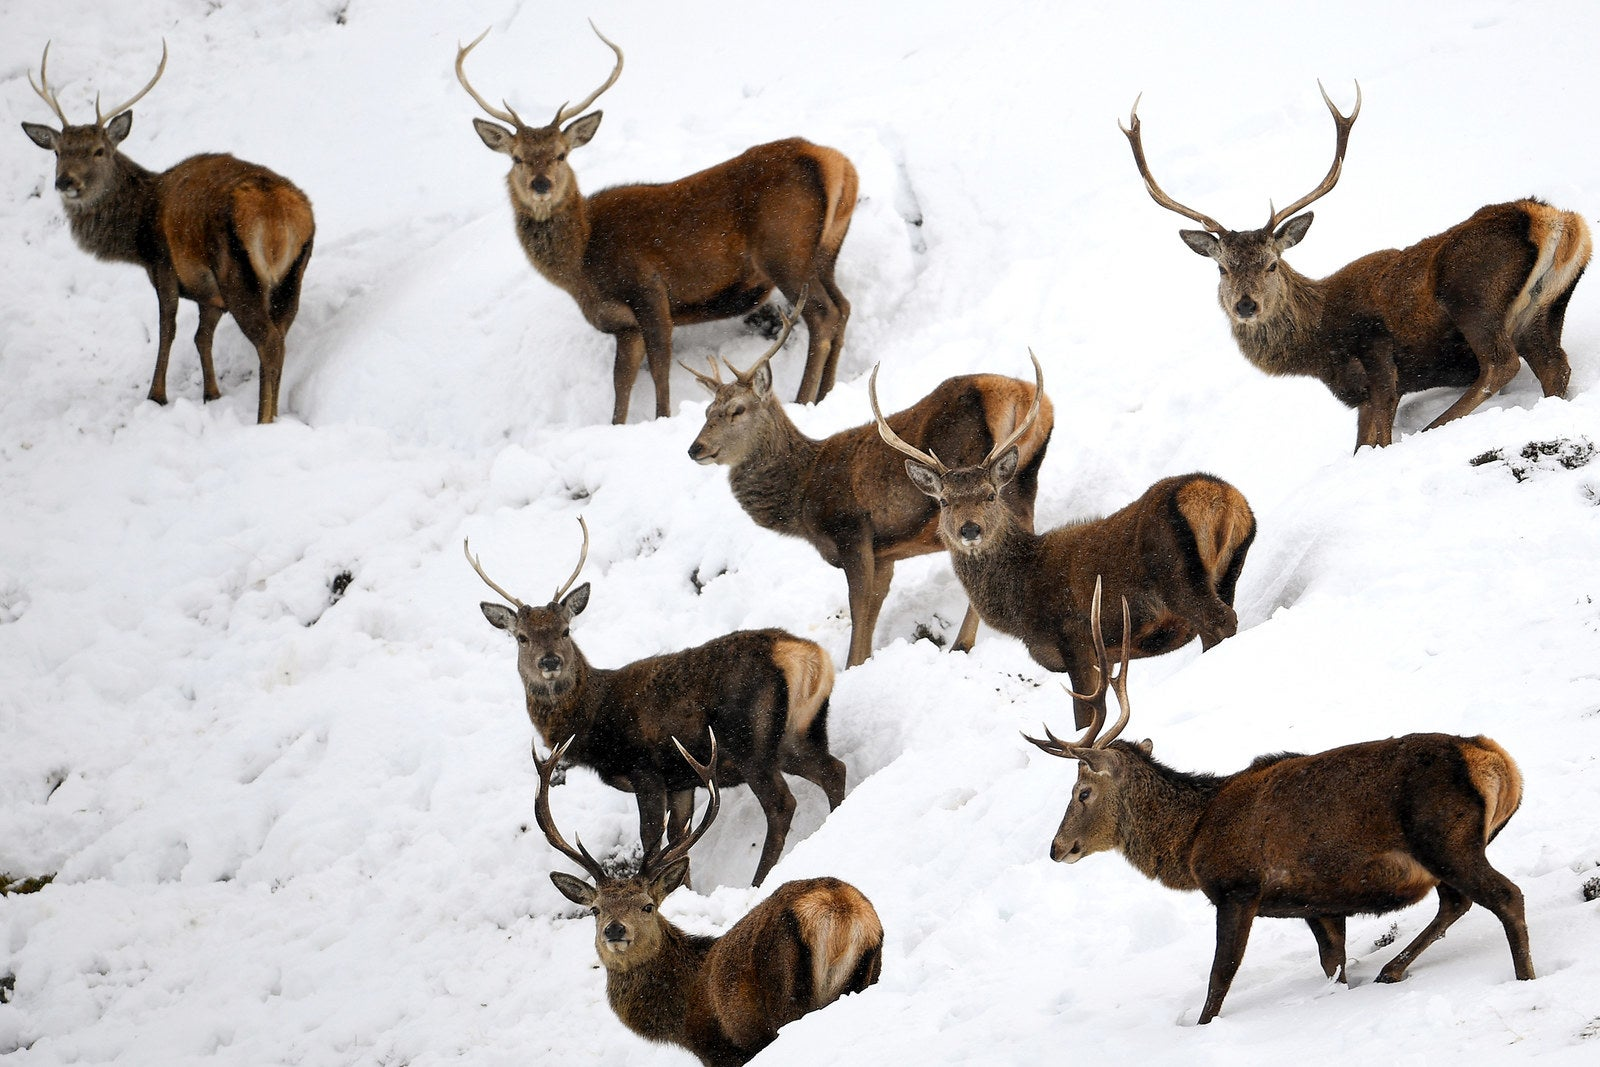 Deer graze in the snow in Braemar, Scotland, on Feb. 15. Police are warning of hazardous driving conditions across much of the Scottish Highlands.